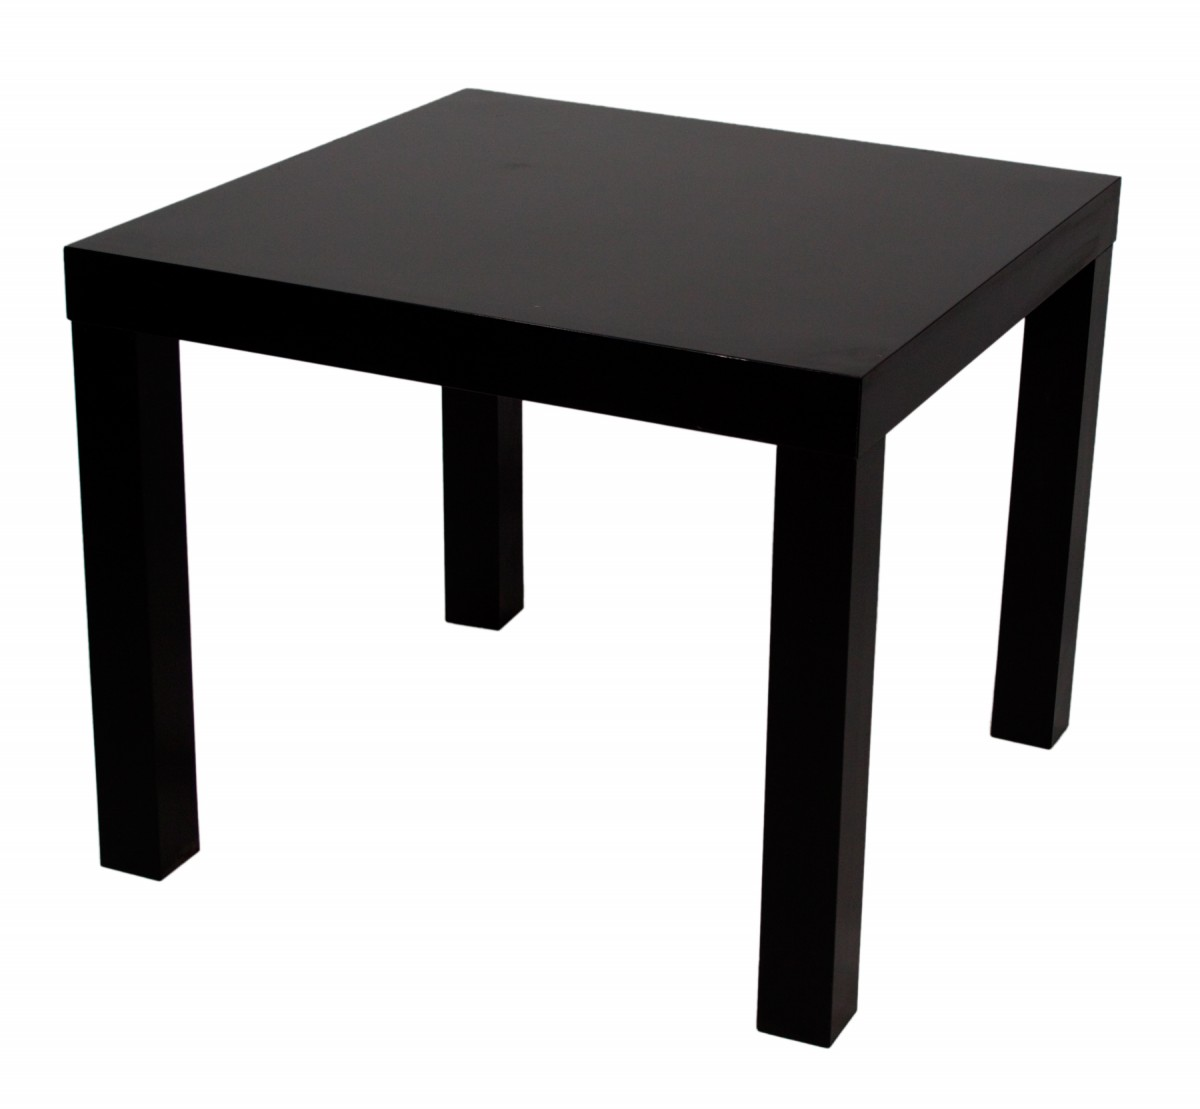 Table basse woody noire mobilier location - Petite table basse salon ...